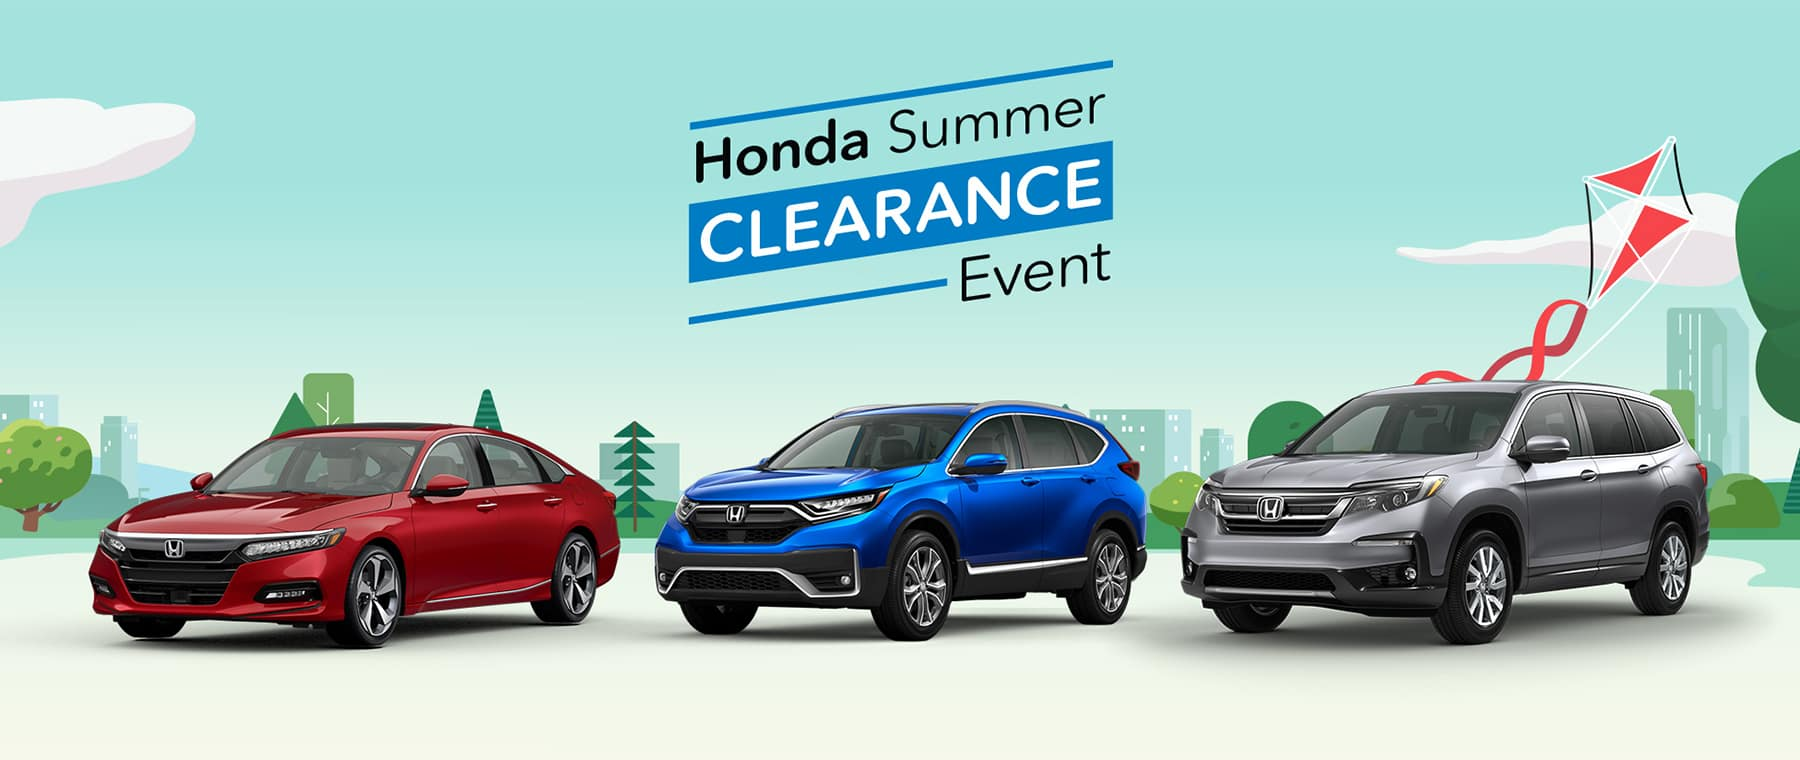 Honda Summer Clearance Sales Event in Greensburg PA